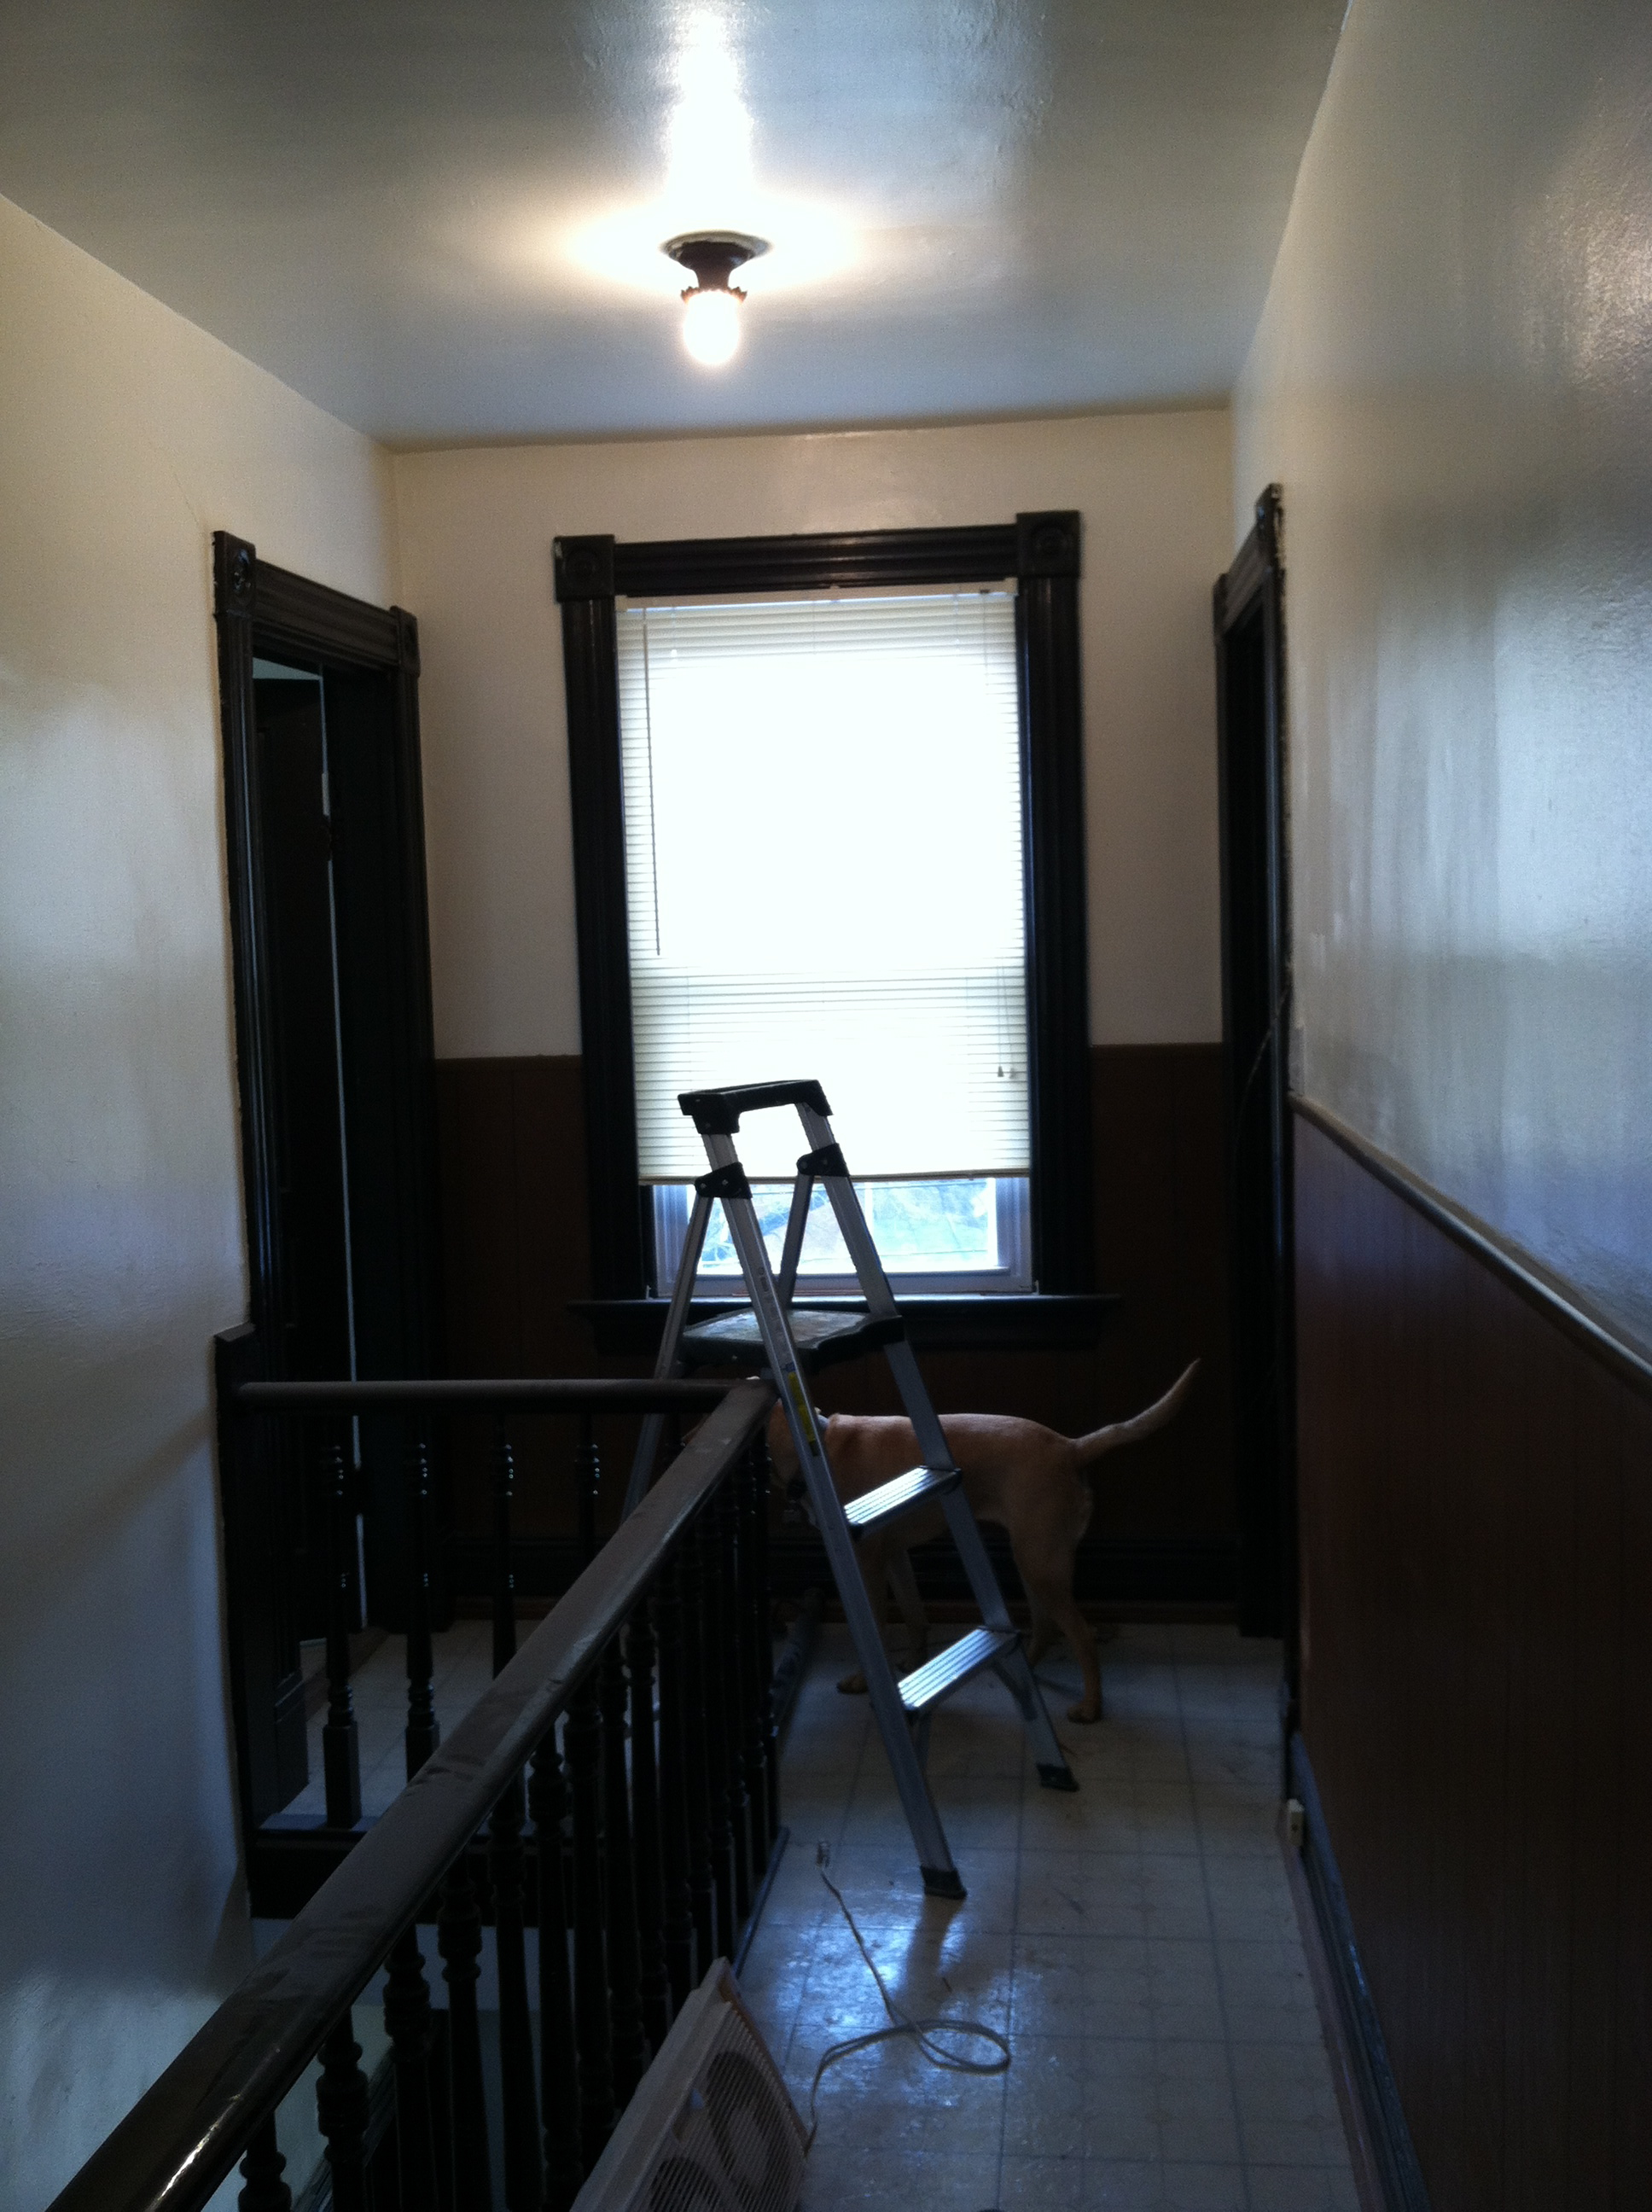 This is the opposite end of the hallway. Kitchen on the left and bedroom and living room on the right.